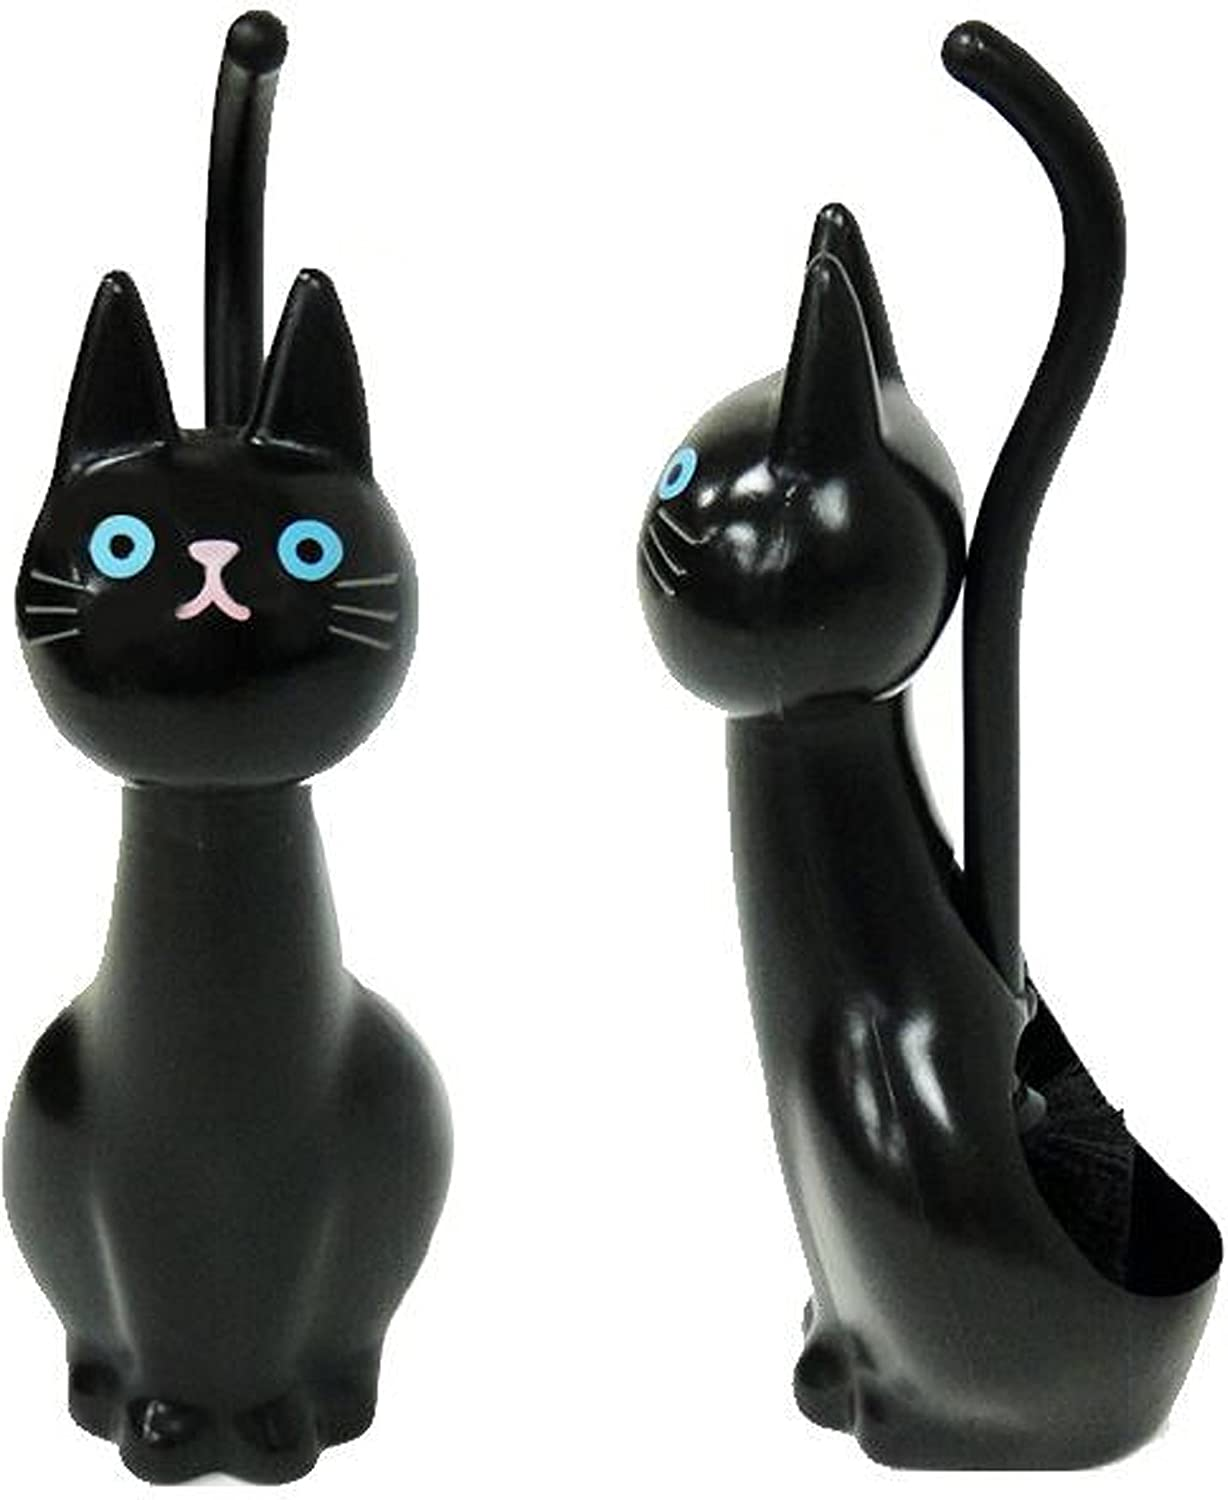 MEIHO Cat Toilet Brush Black ME02 From Japan